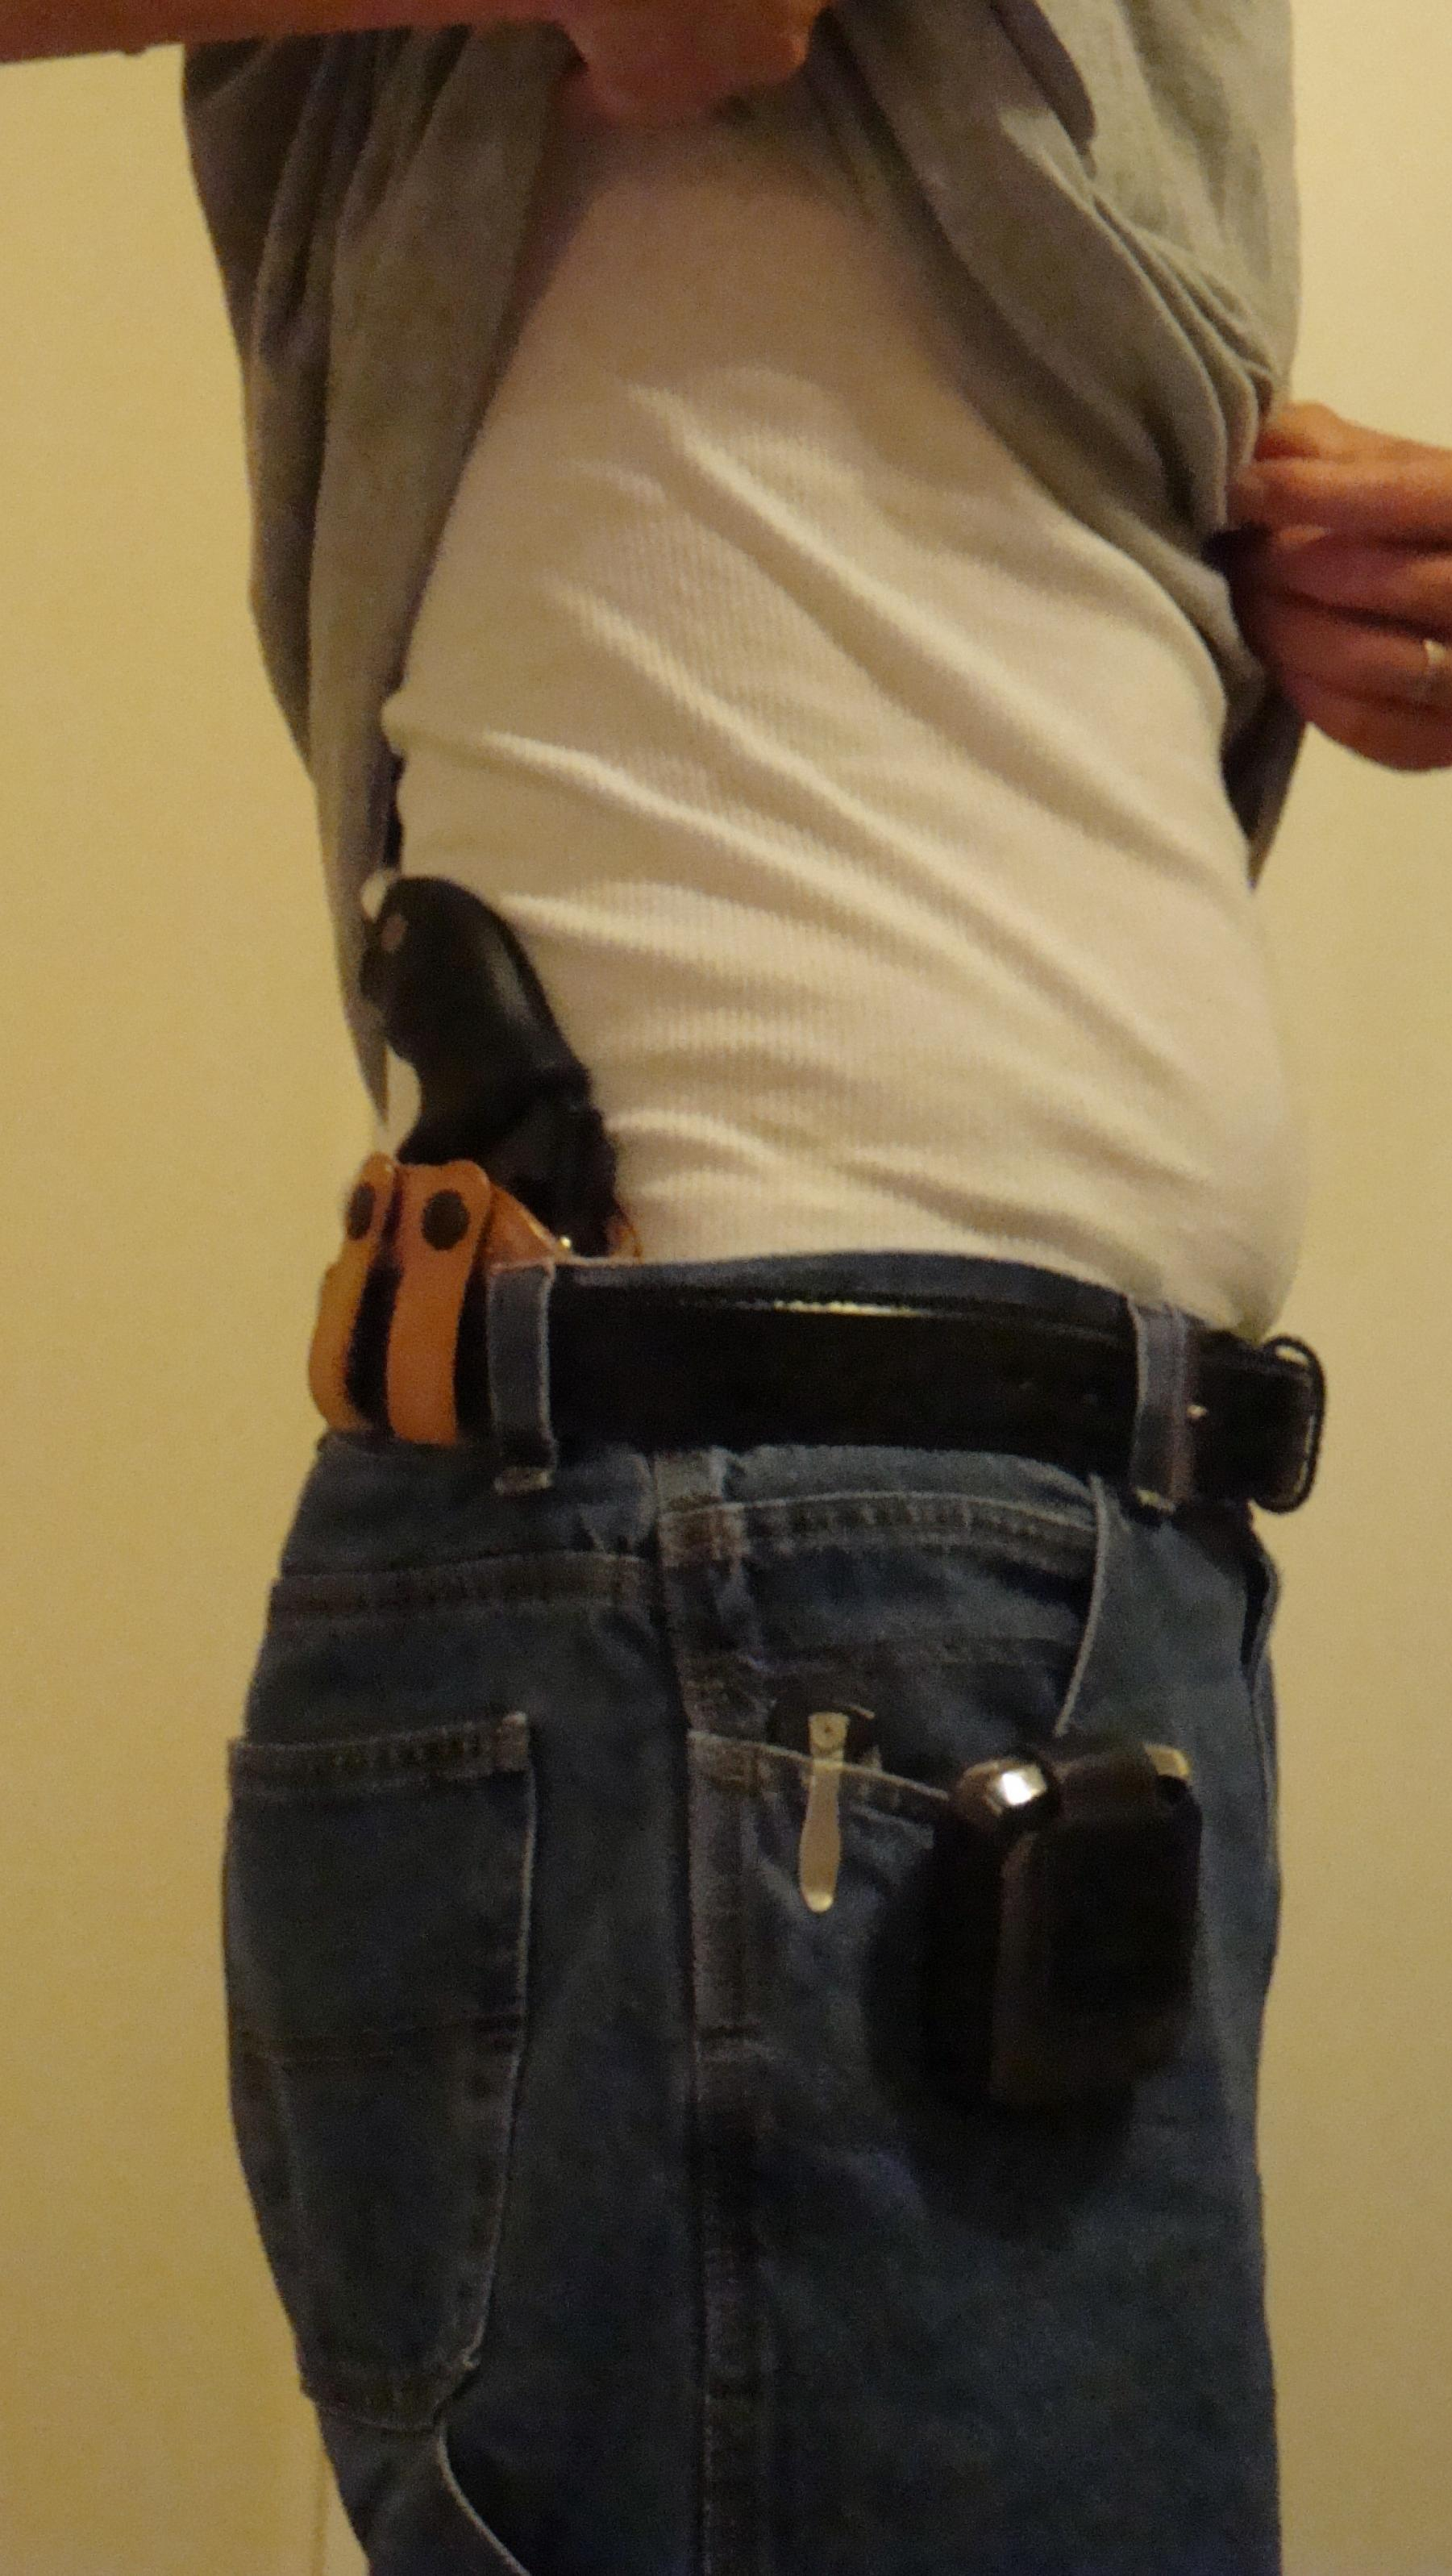 Let's See Your Pic's - How You Carry Concealed.-galco-side-up.jpg